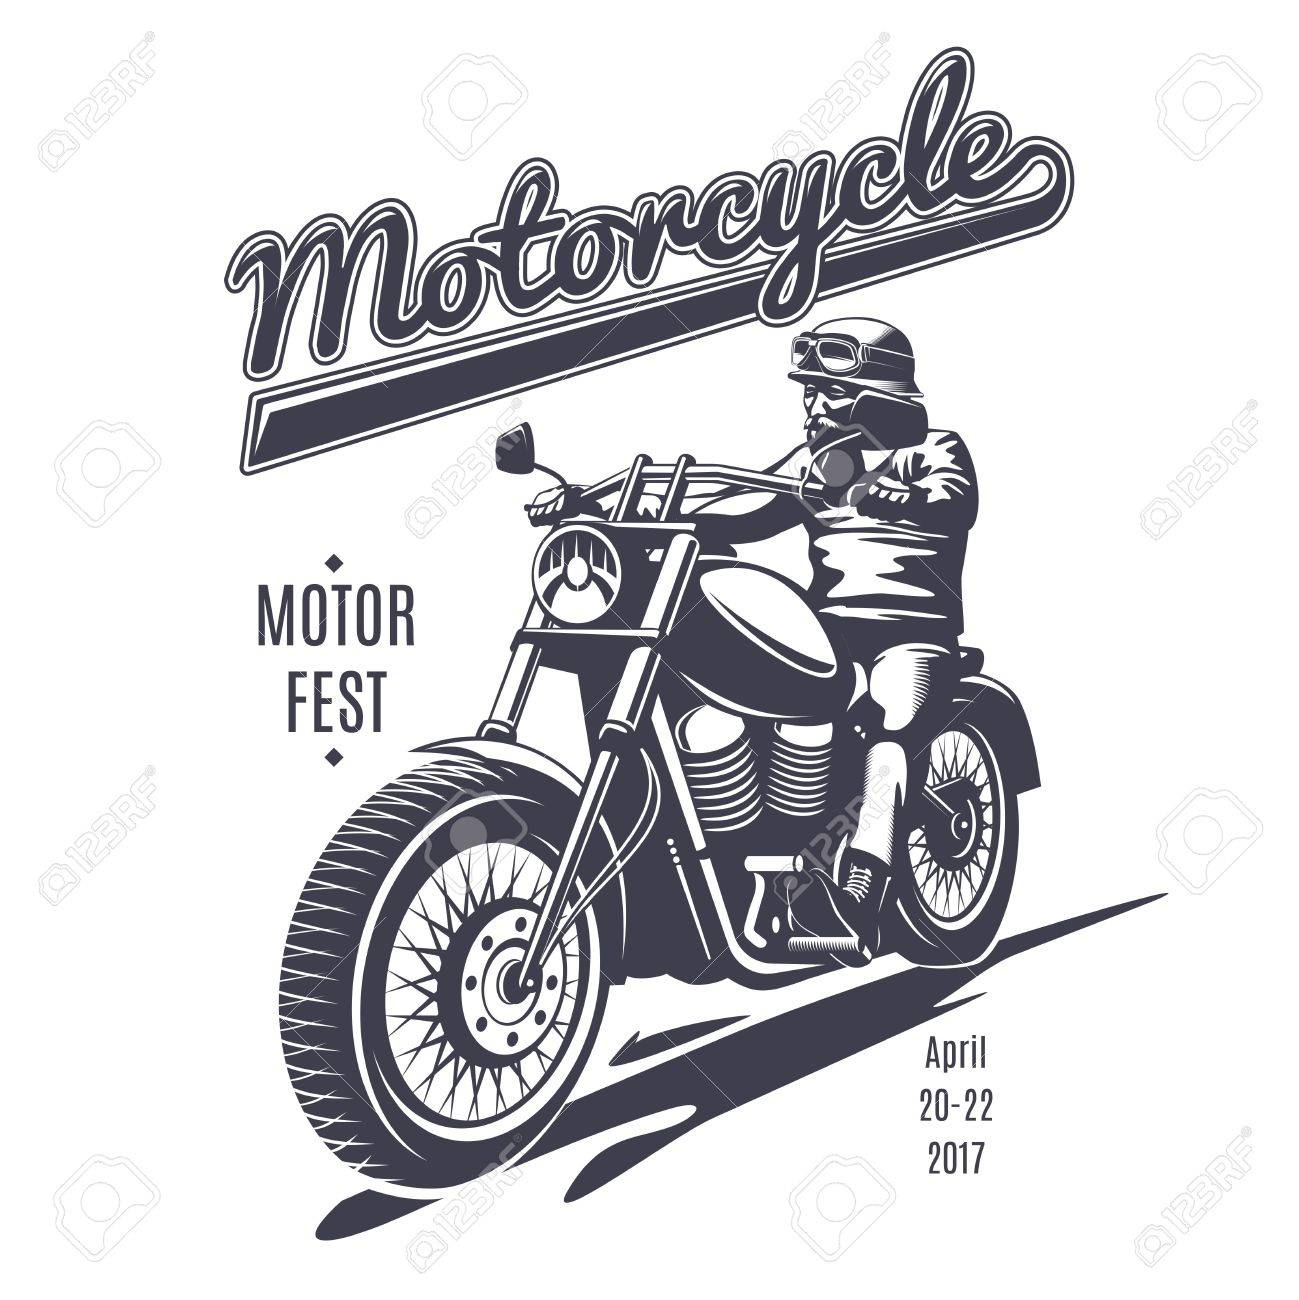 Vintage Moto Fest Logotype Template With Biker Riding Motorcycle ...